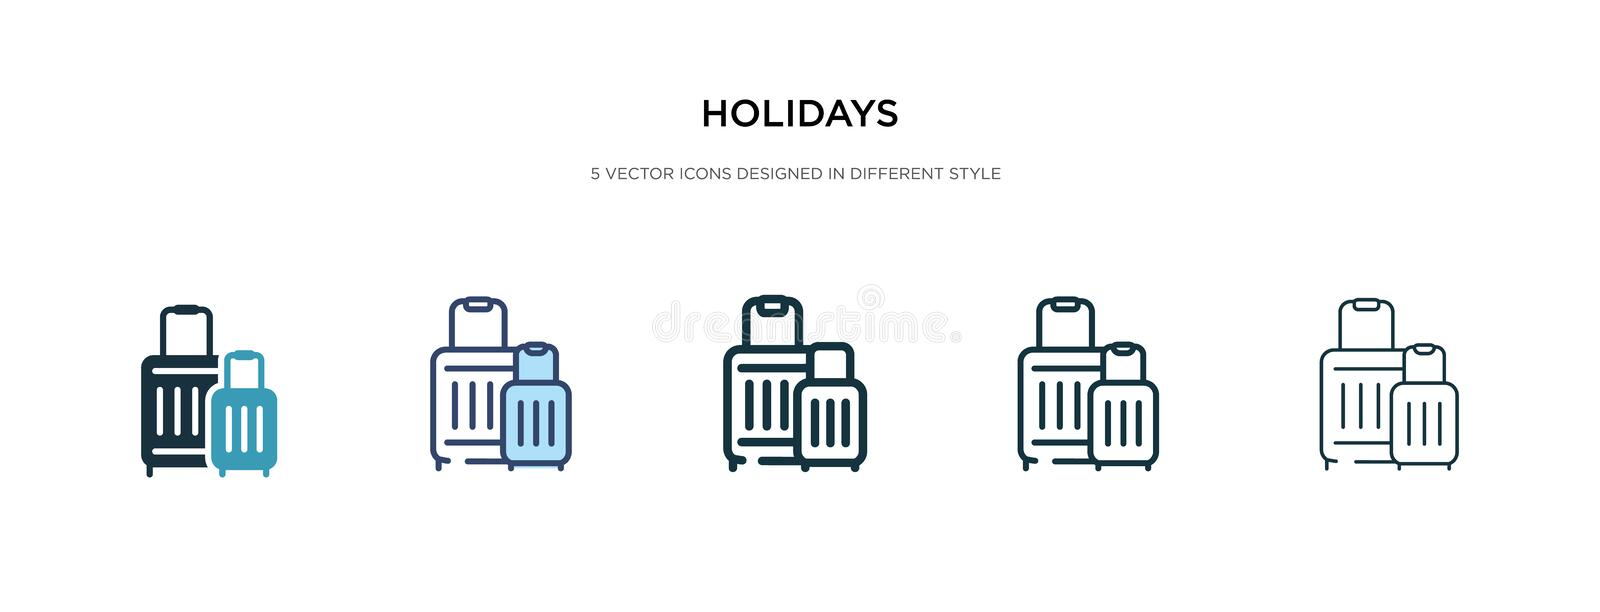 Holidays icon in different style vector illustration. two colored and black holidays vector icons designed in filled, outline, vector illustration